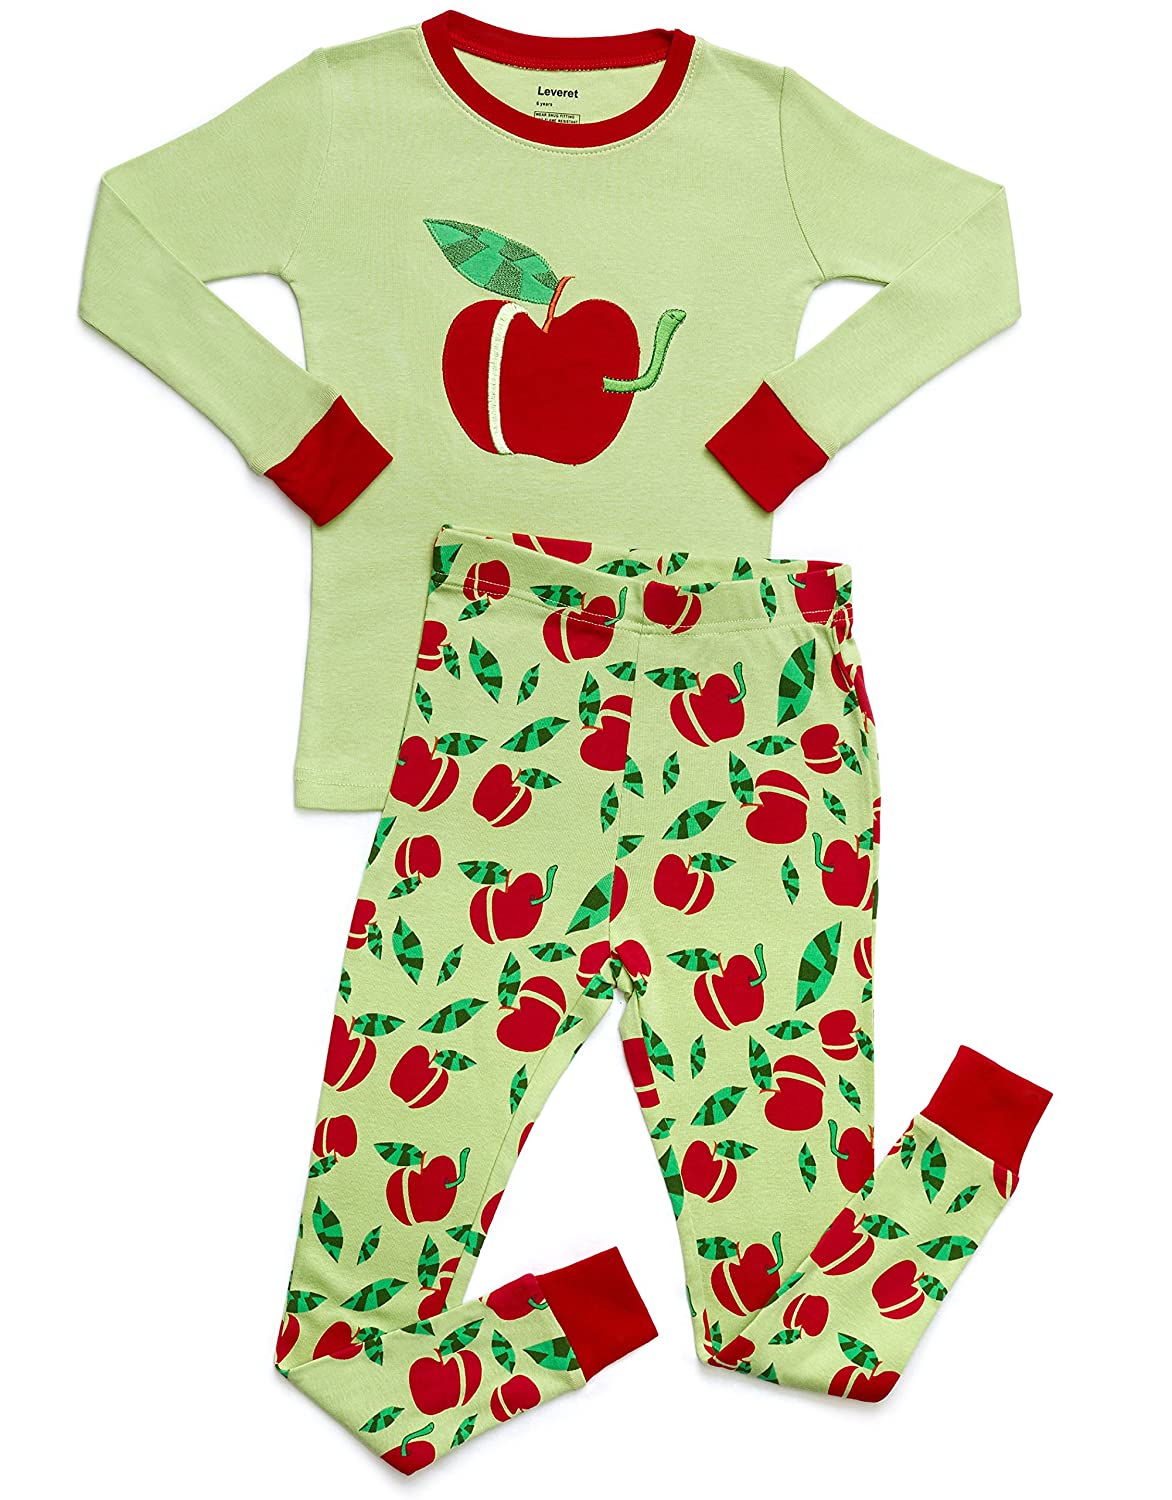 Leveret Kids & Toddler Pajamas Boys Girls 2 Piece Pjs Set 100% Organic Cotton Sleepwear (12 Months-14 Years)